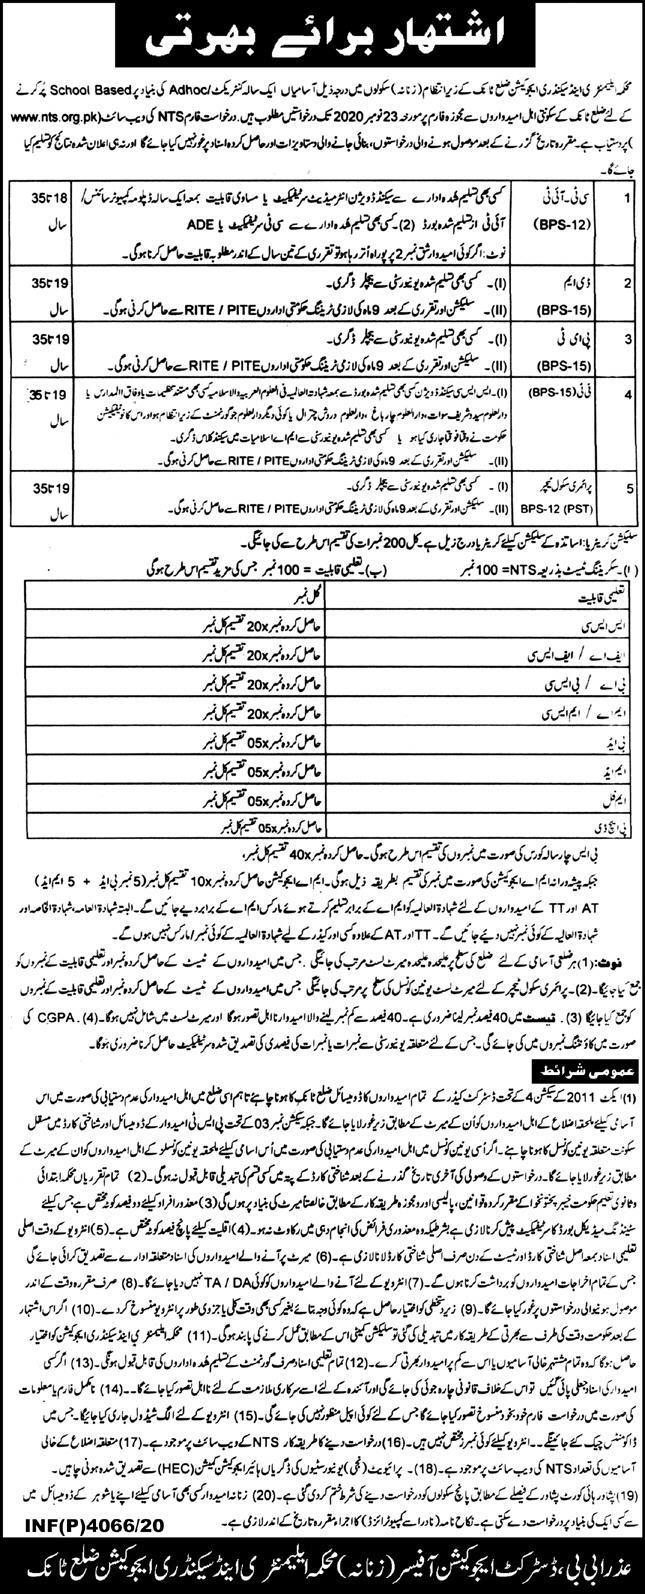 Elementary and Secondary Education Department Tank Jobs 2020